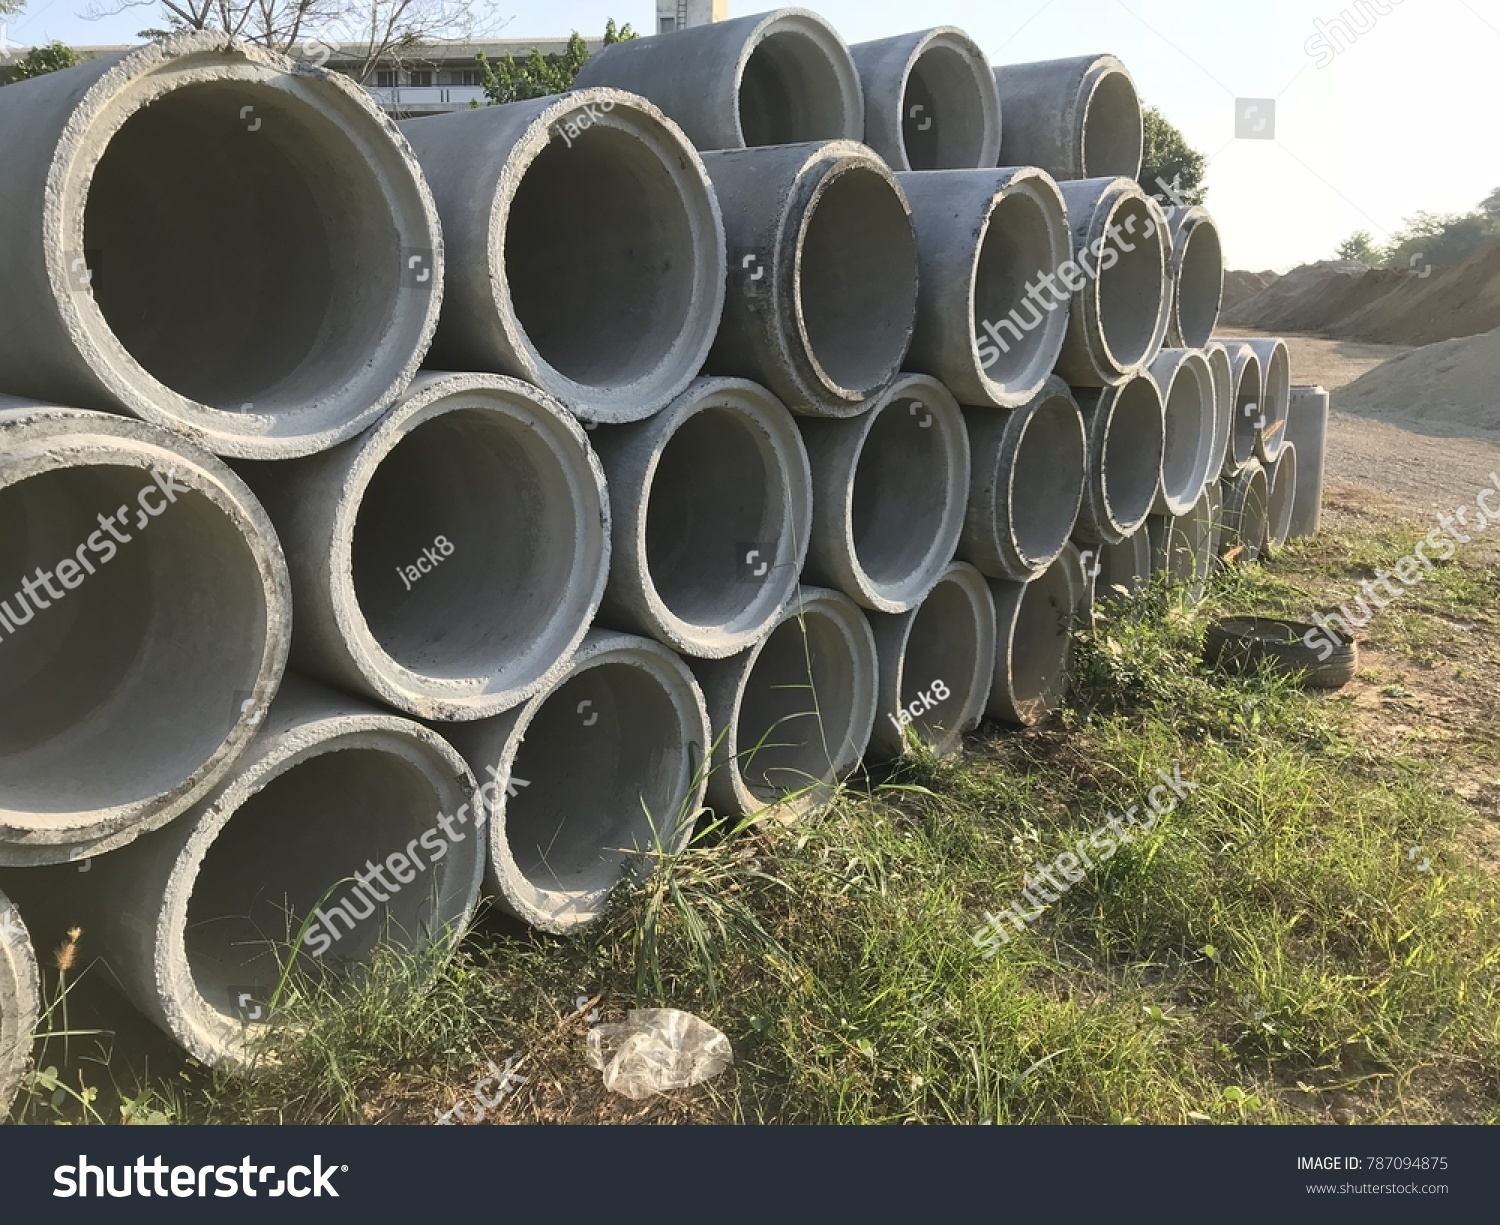 Concrete Drainage Ditch Stock Photo (Royalty Free) 787094875 - Shutterstock & Concrete Drainage Ditch Stock Photo (Royalty Free) 787094875 ...